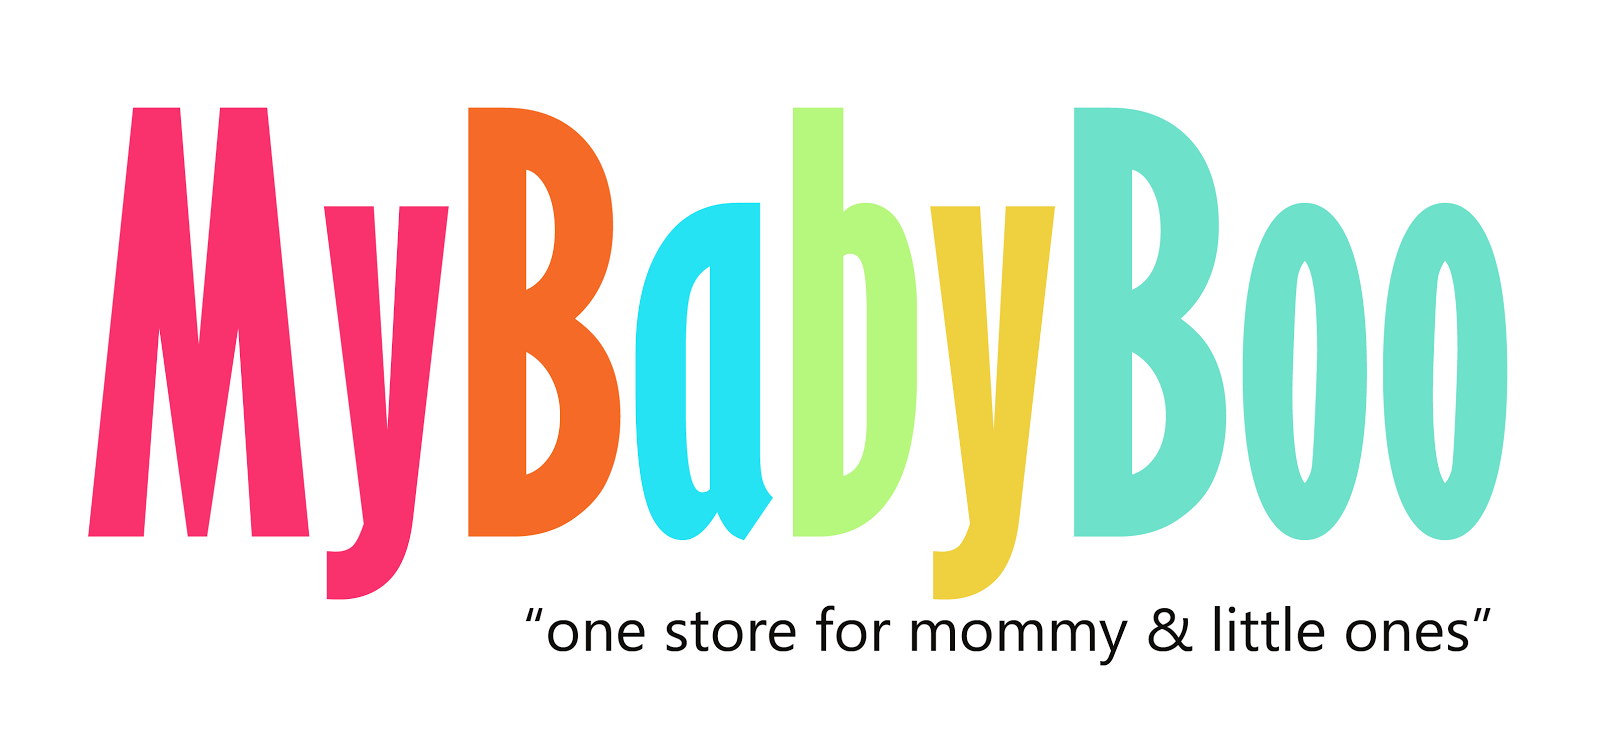 SHOP MOMMY & BABY APPARELS HERE!